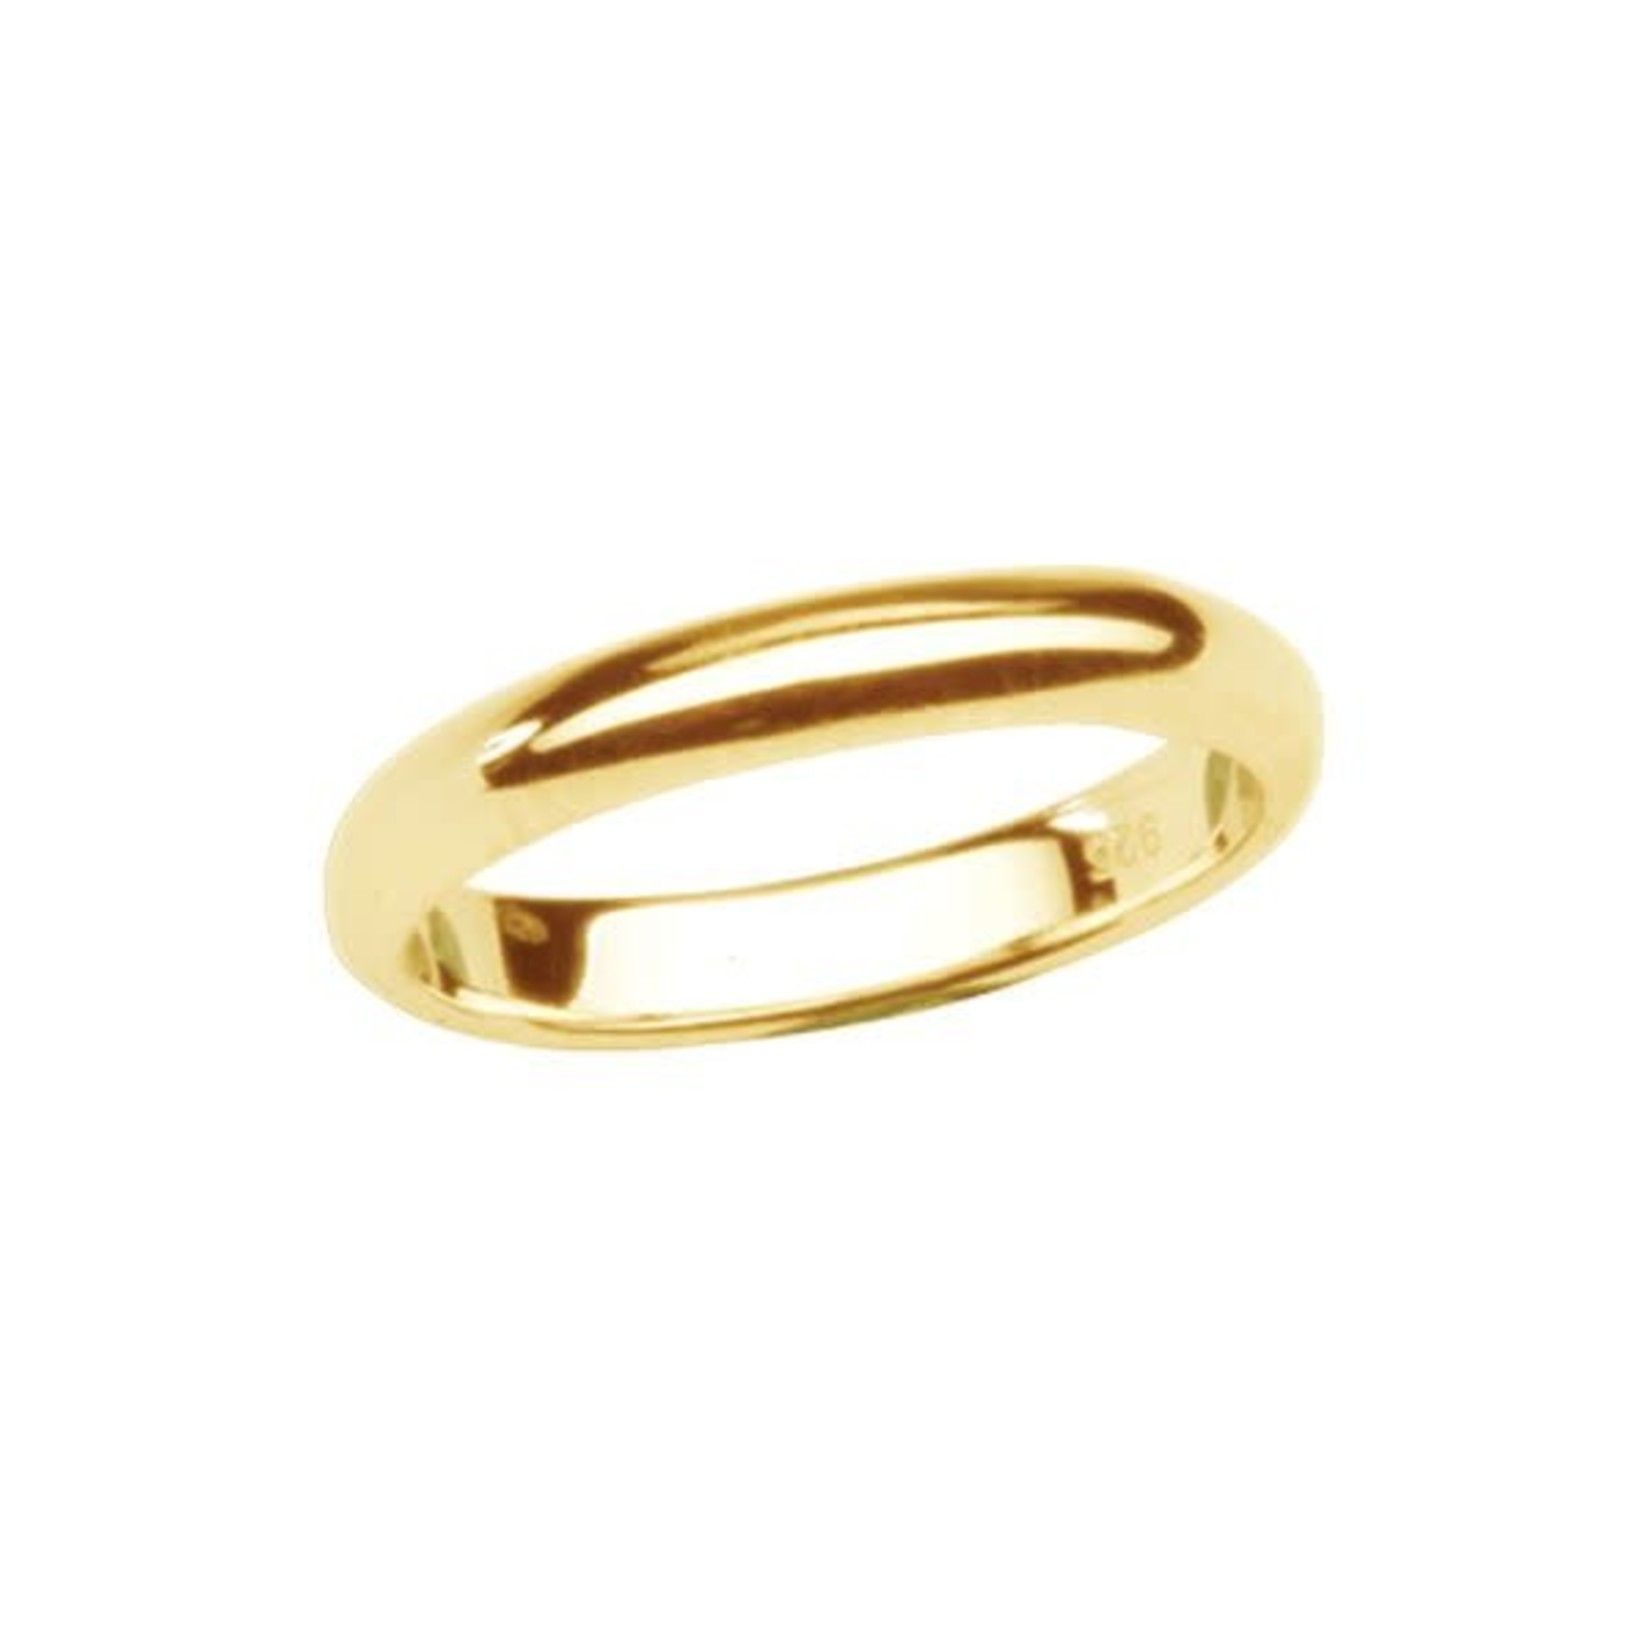 Cherished Moments Baby Ring (Size 1) 14K Gold-Plated - 2mm Band